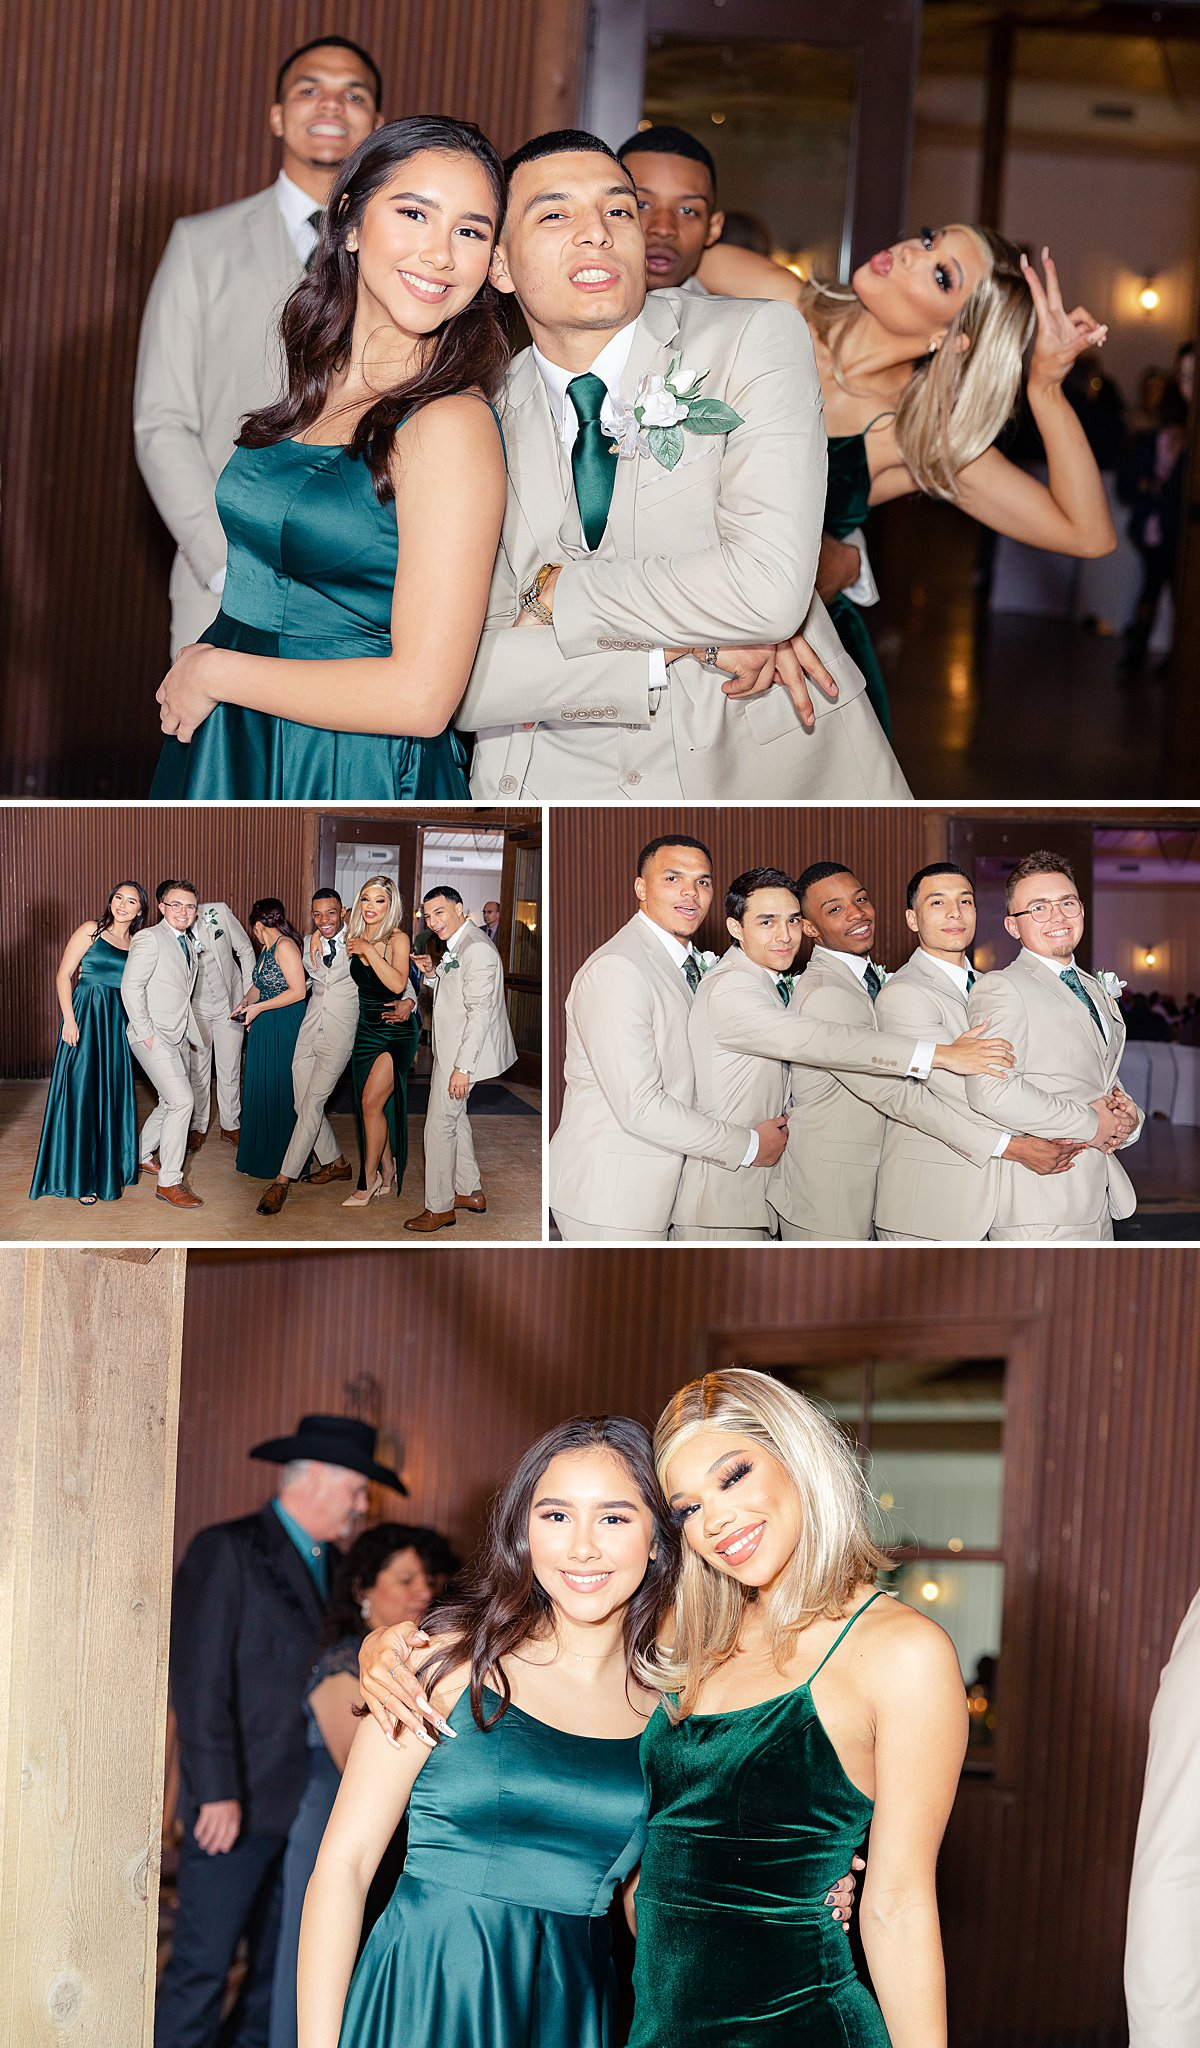 Carly-Barton-Photography-Texas-Wedding-Photographer-Western-Sky-Wedding-Event-Venue-Emerald-Green-Theme_0058.jpg